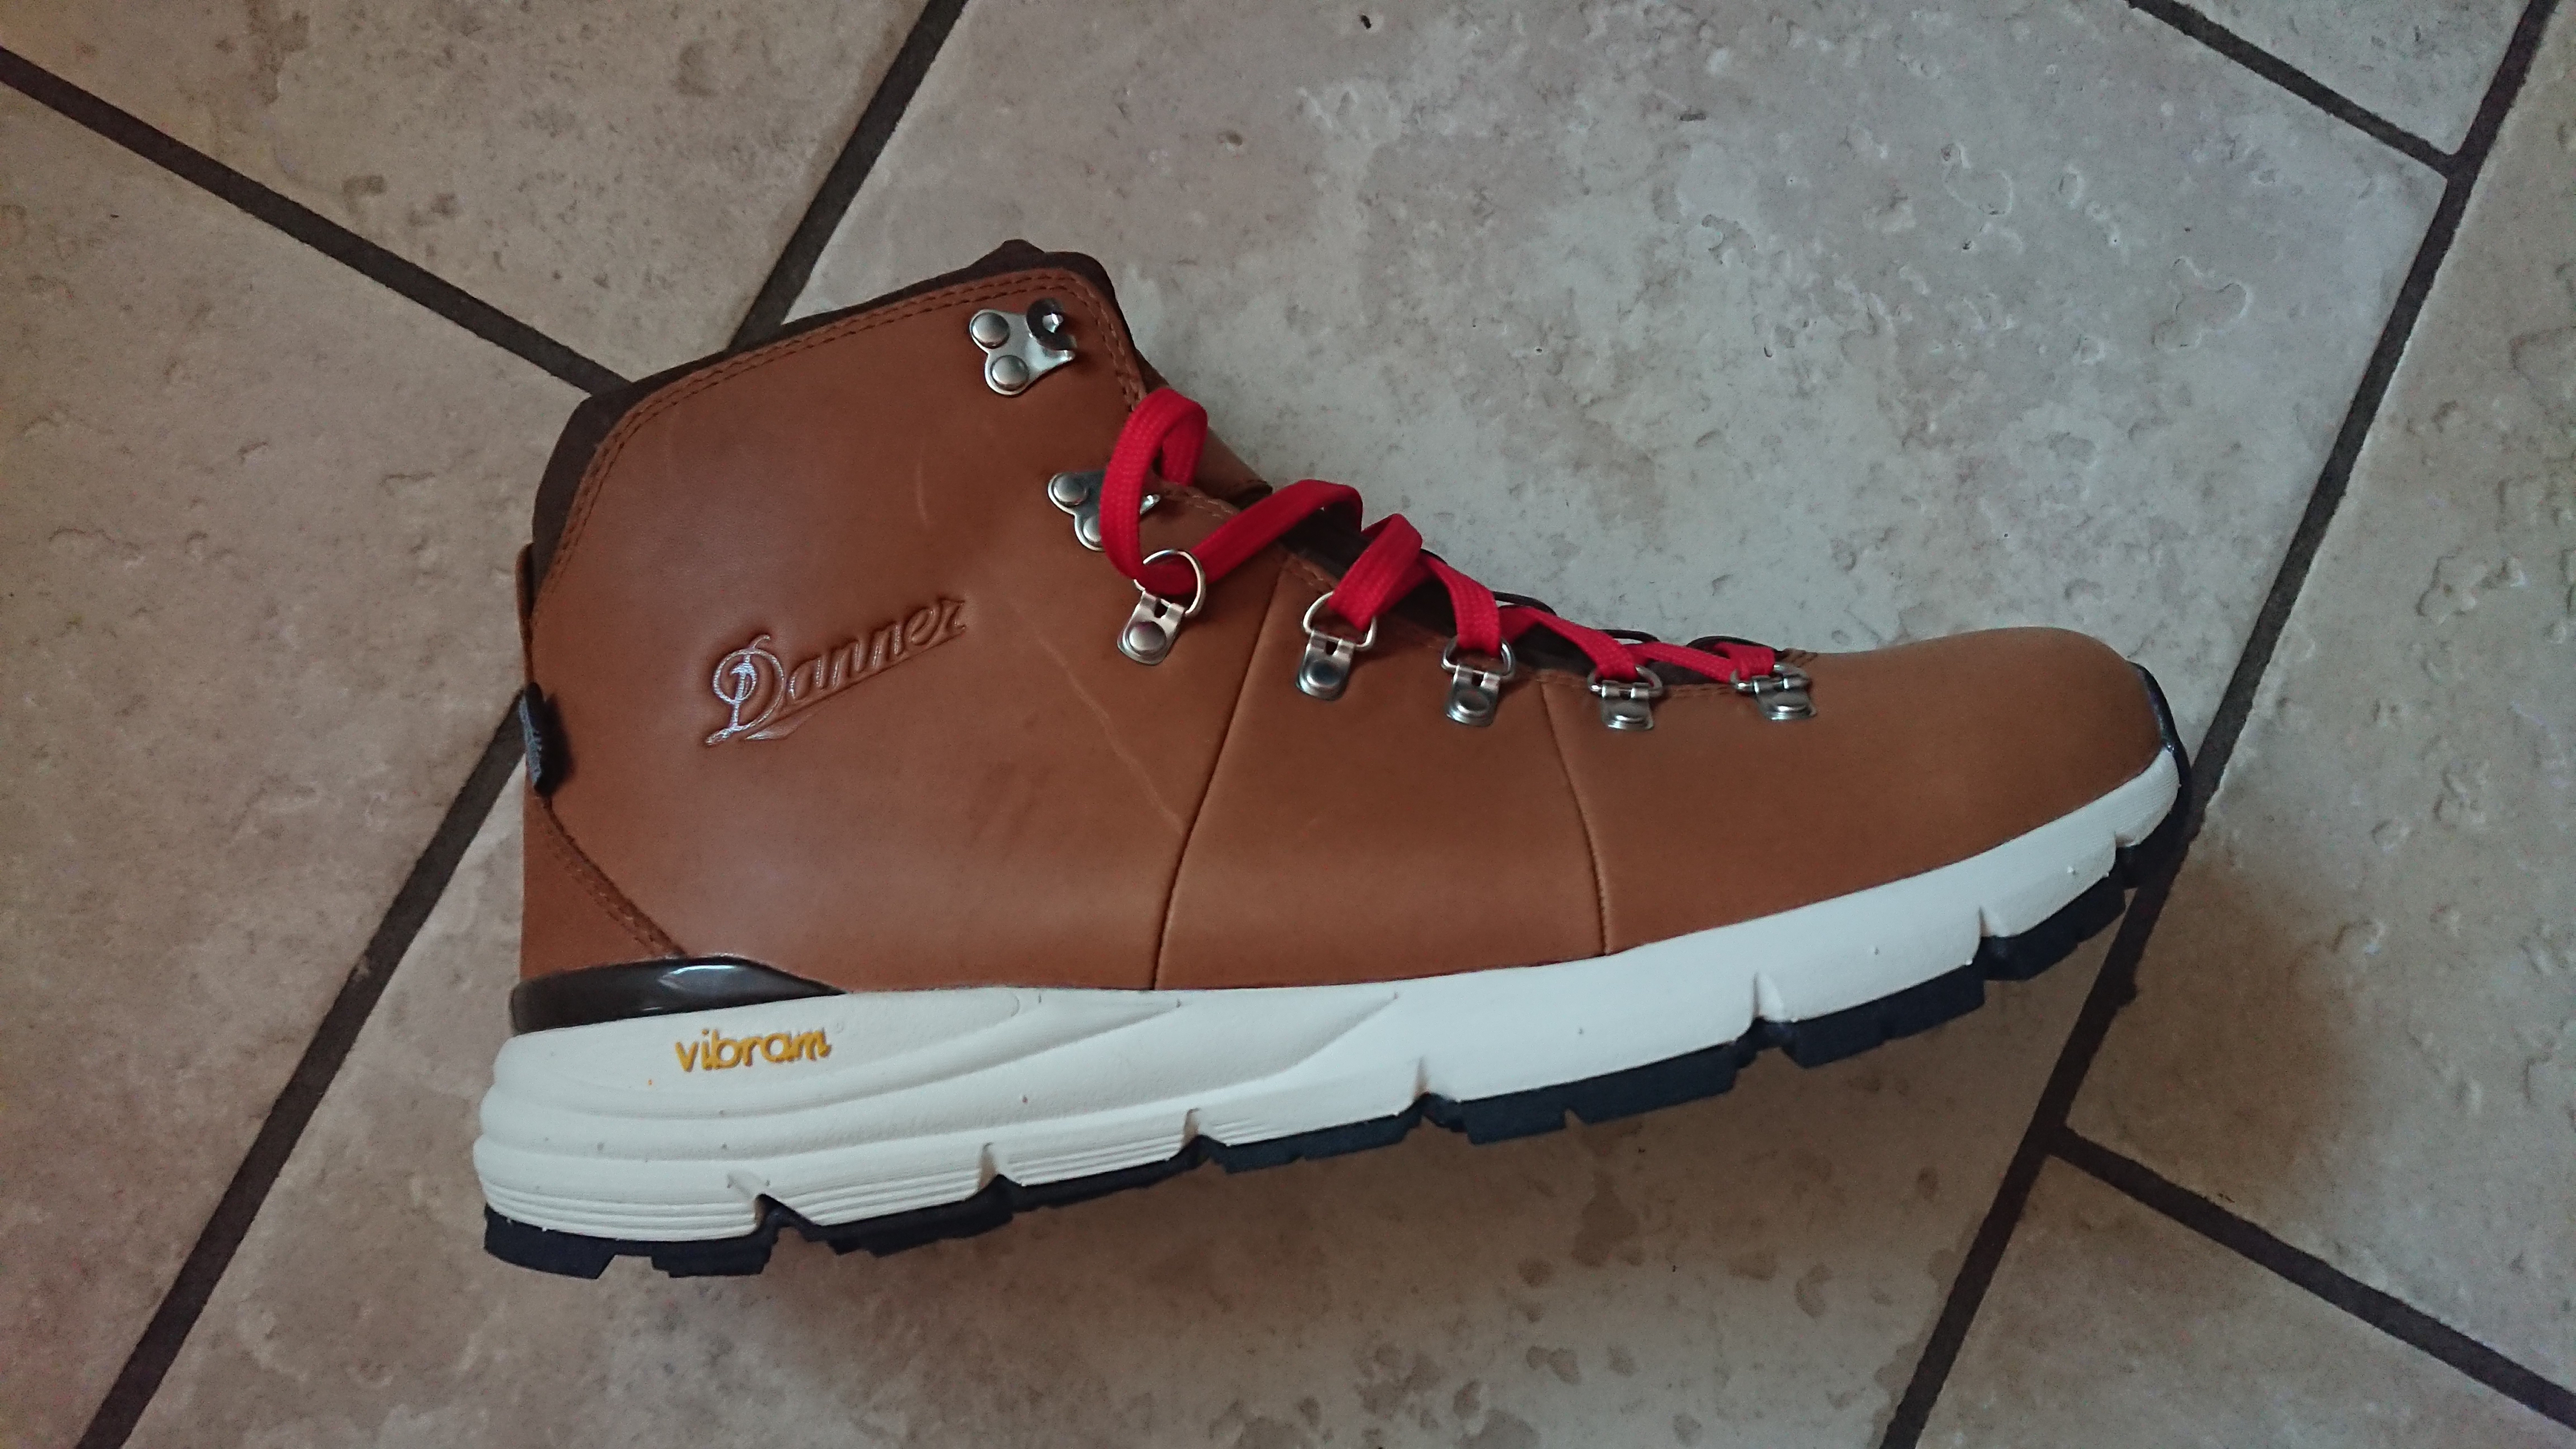 Danner Mountain 600 boots review